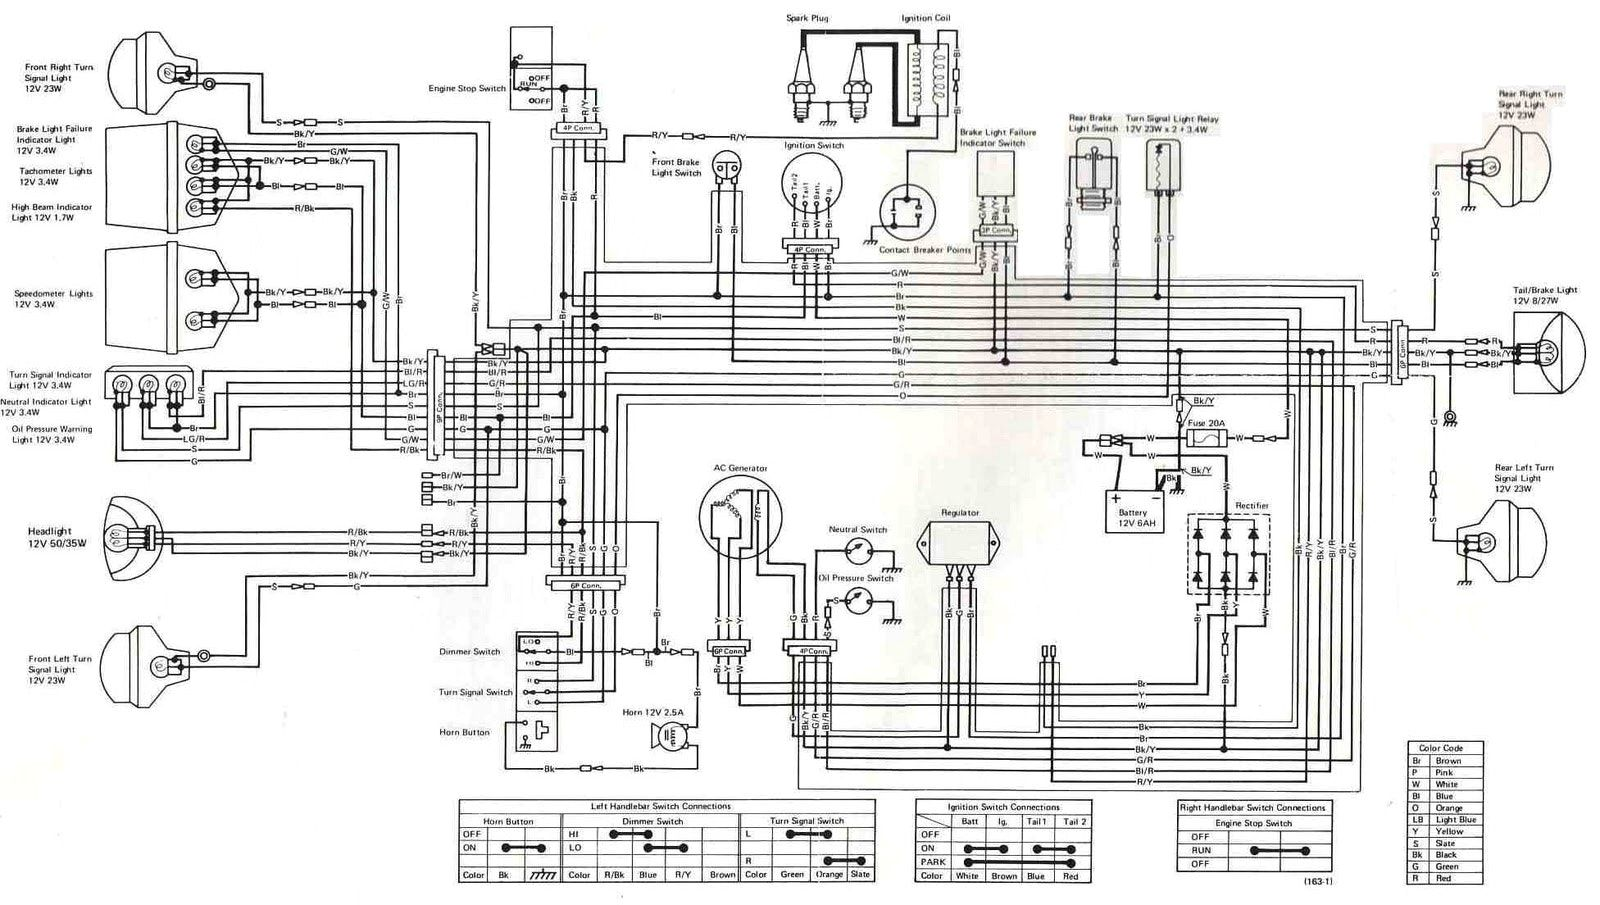 k z 400 wiring diagram easy rules of wiring diagram u2022 rh lushpuppy co  1975 KZ400 KZ400 Bobber